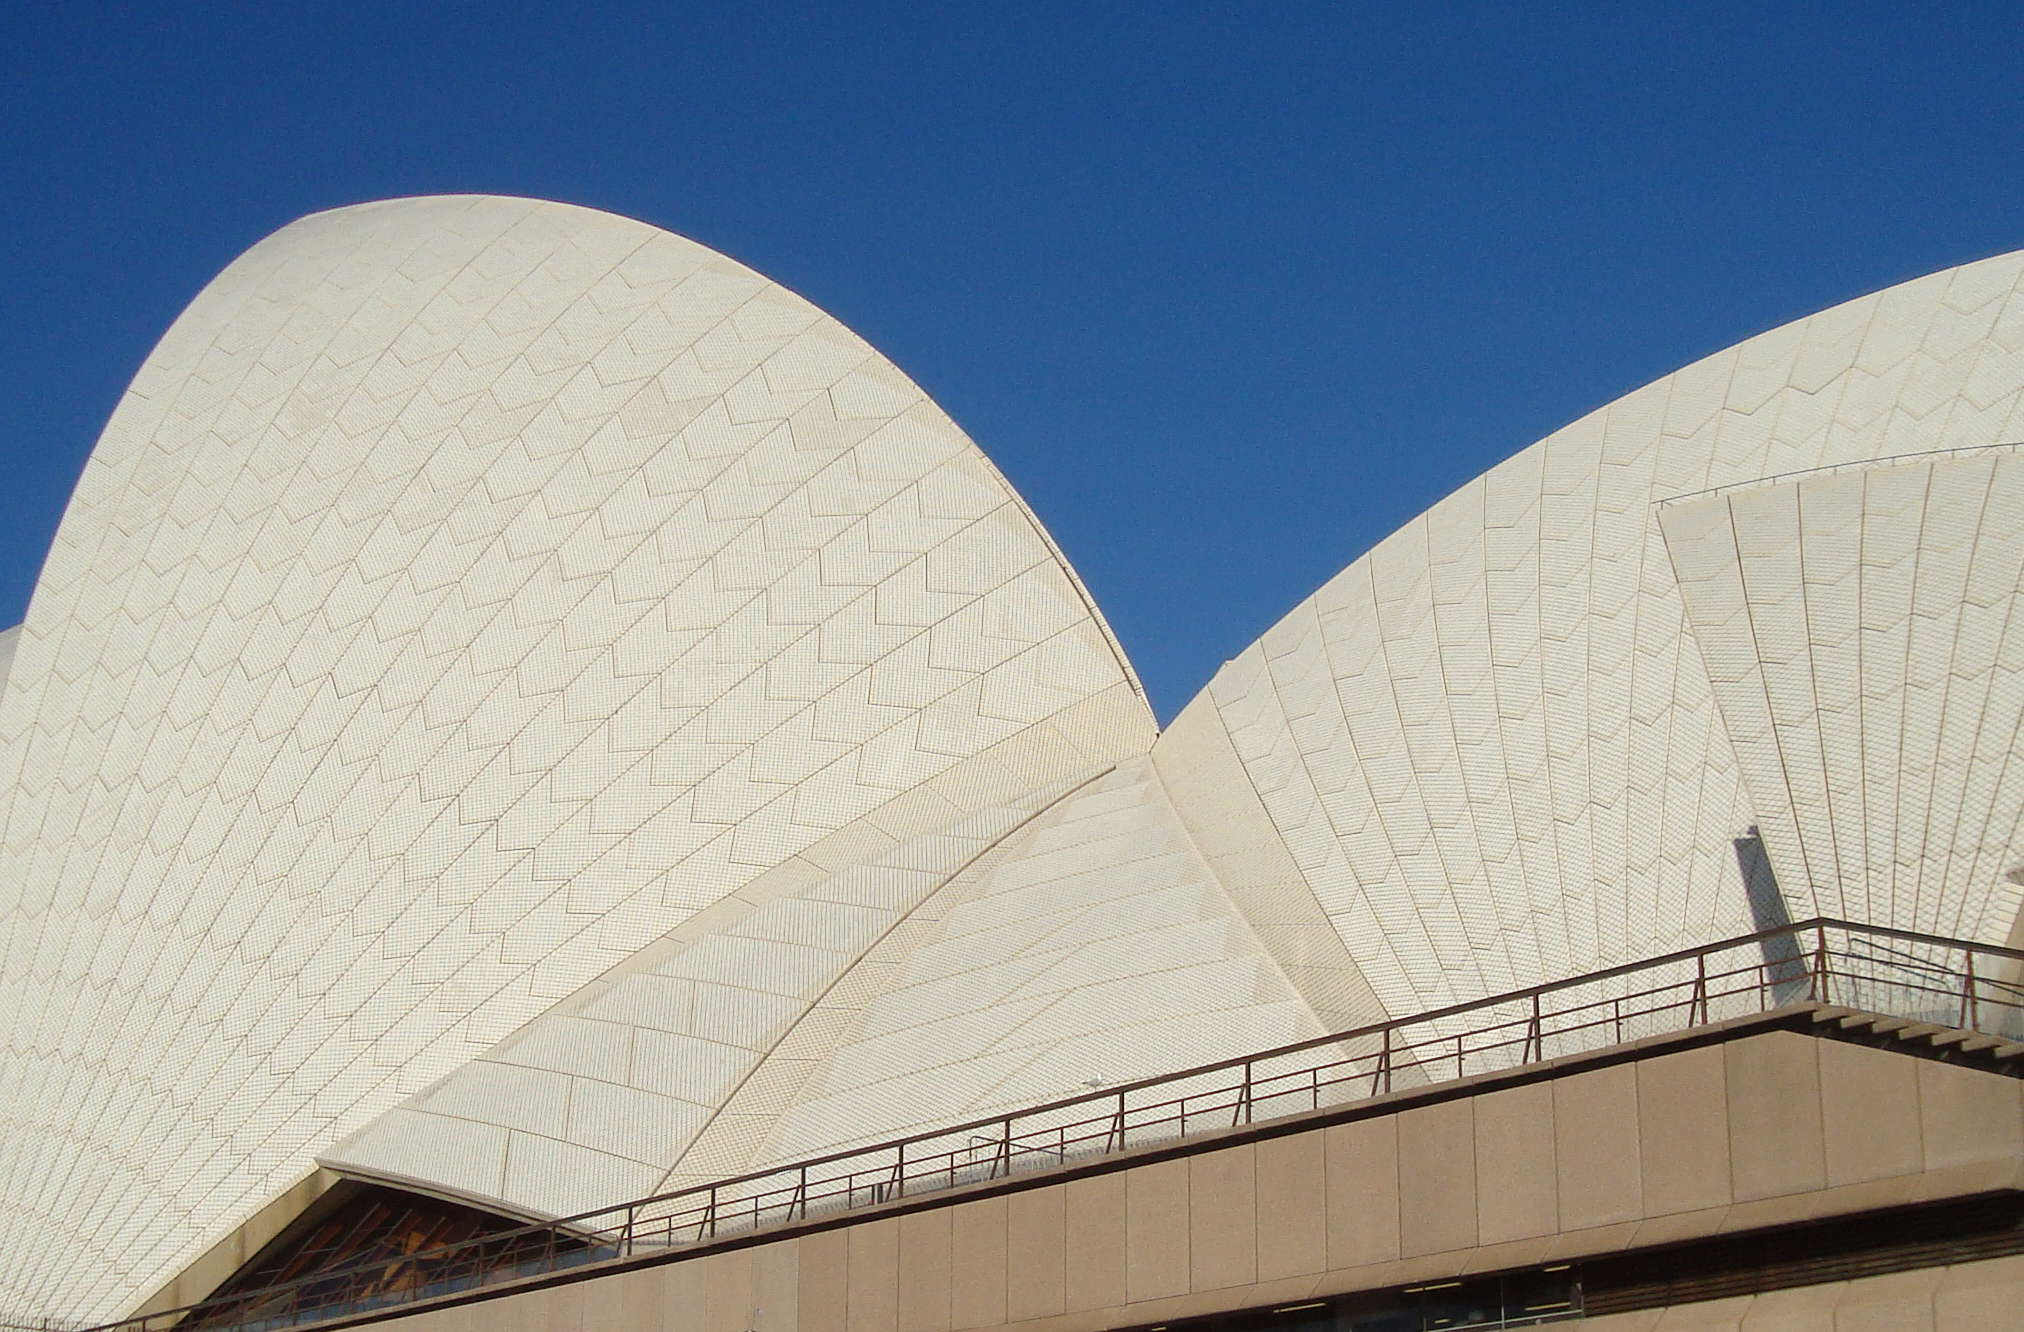 sydney-operahouse-up-close-sydney-australia